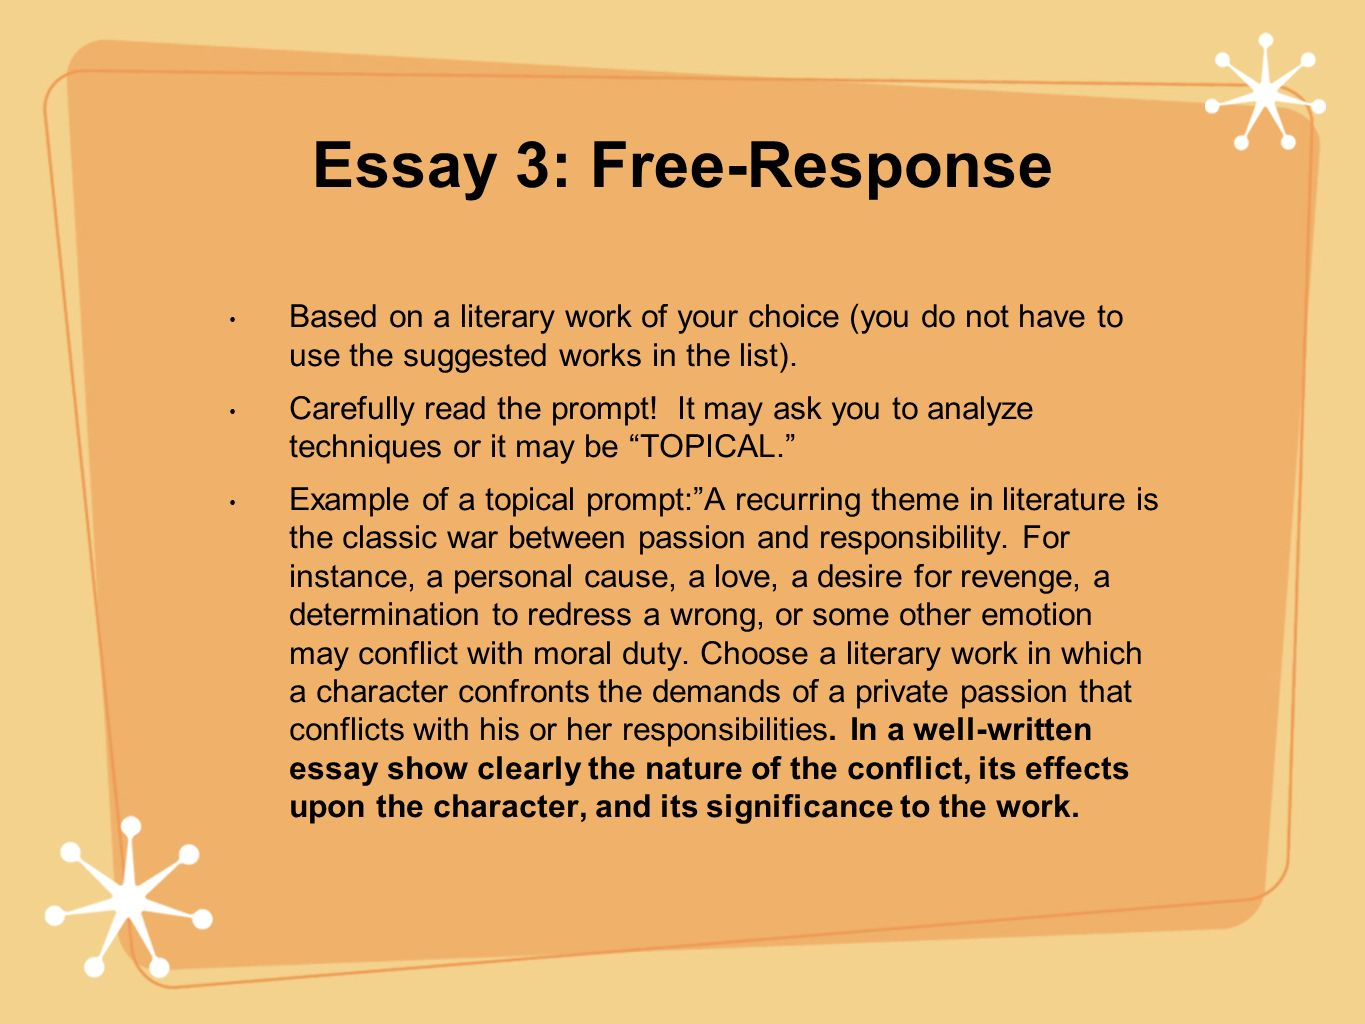 How to write a free response essay